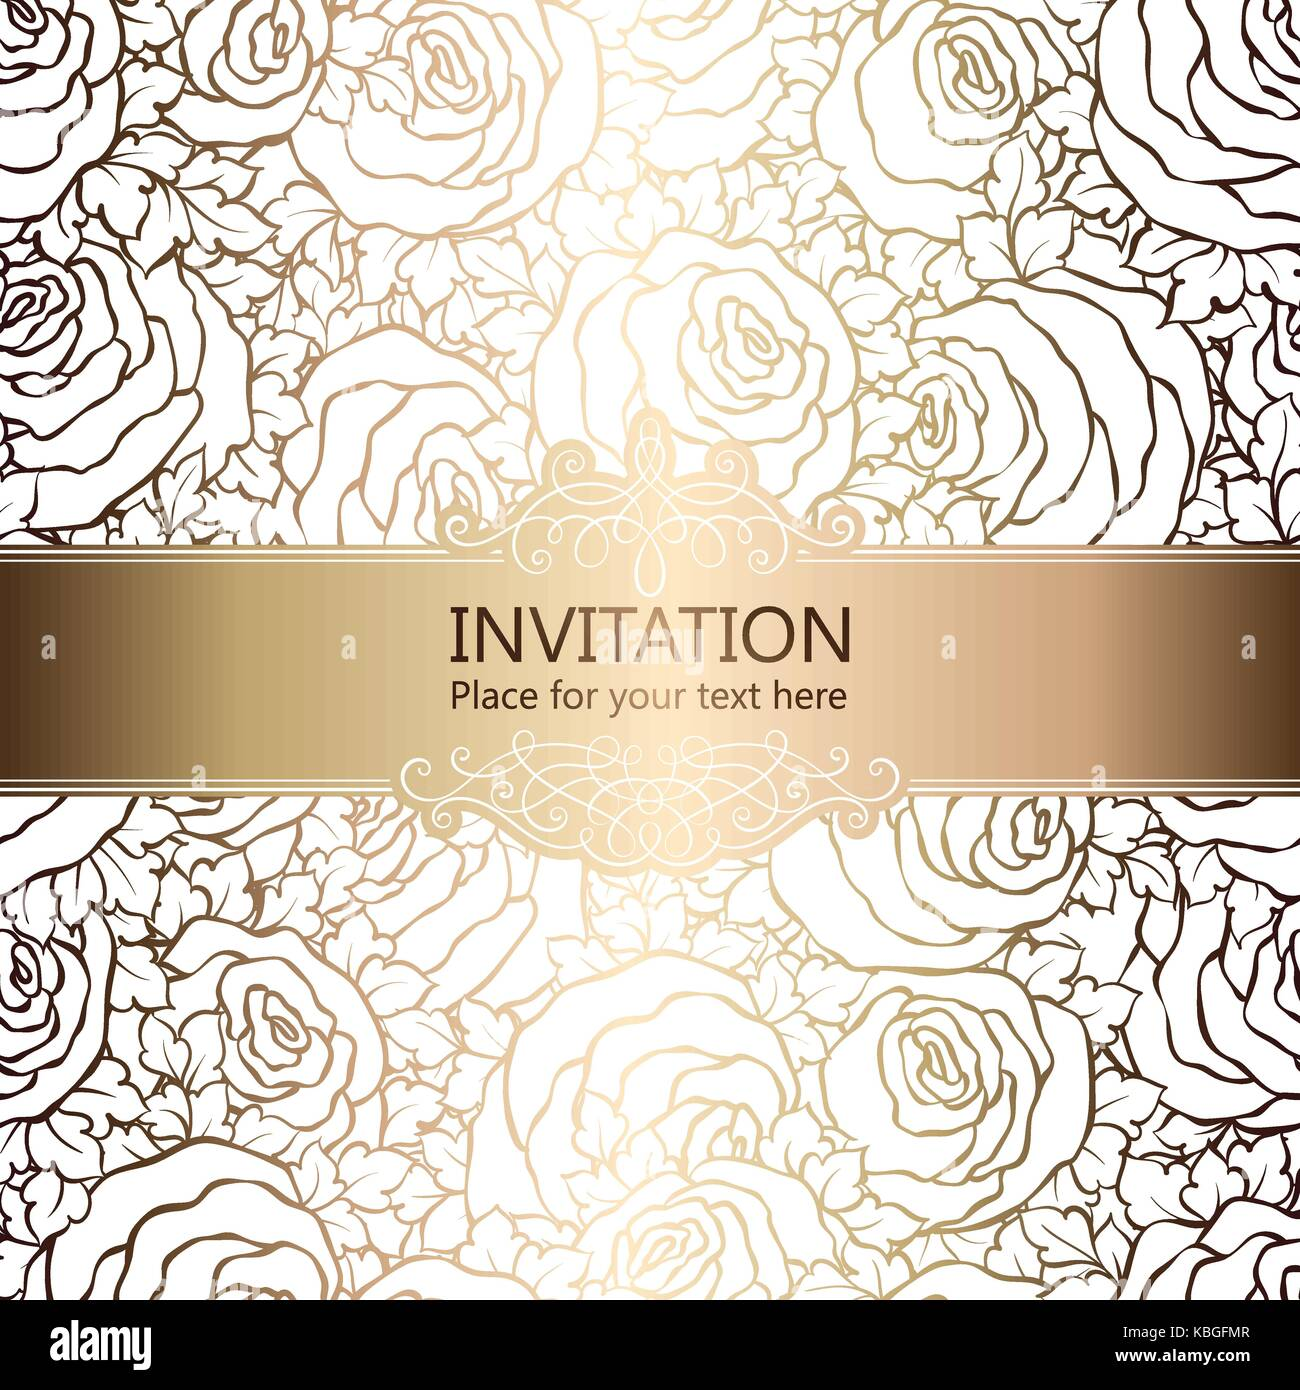 Abstract Background With Roses Luxury White And Gold Vintage Frame